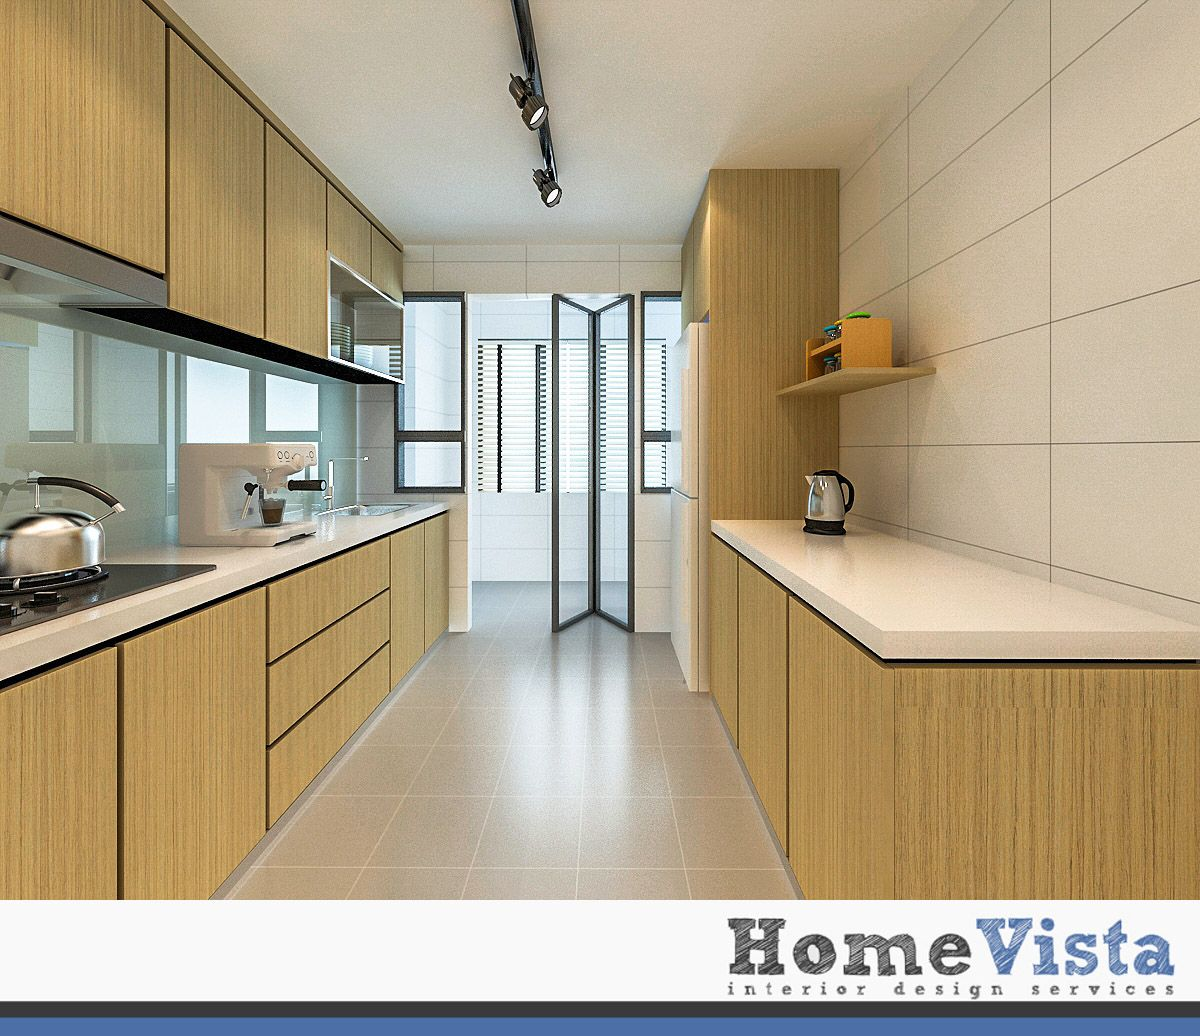 Kitchen Interior Design Singapore: 4 Room HDB BTO - Punggol BTO - HomeVista